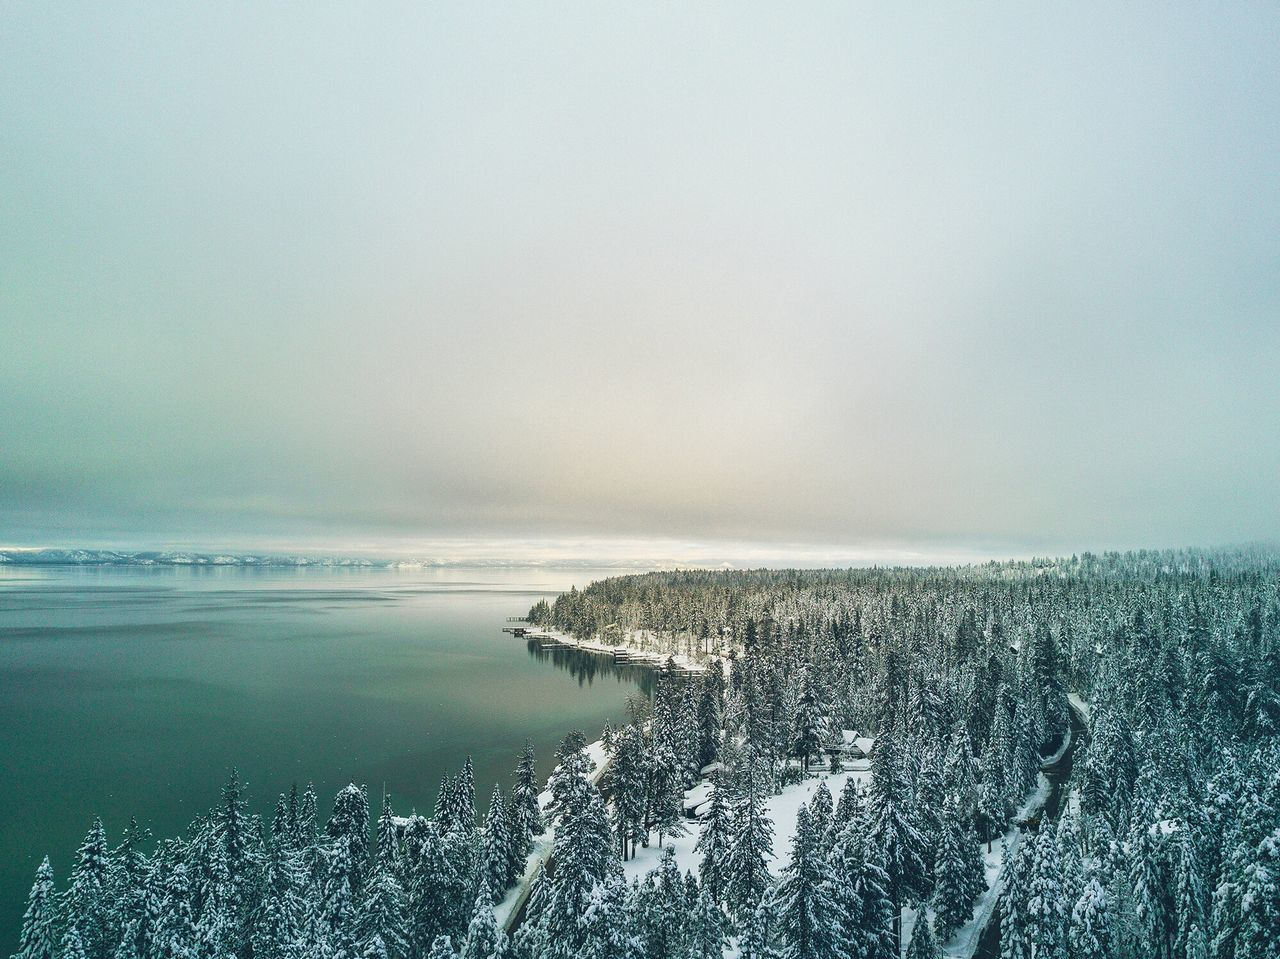 Nature Beauty In Nature Tranquility Scenics Tranquil Scene Water Cold Temperature Winter Sea No People Snow Sky Outdoors Landscape Horizon Over Water Day The Great Outdoors - 2017 EyeEm Awards